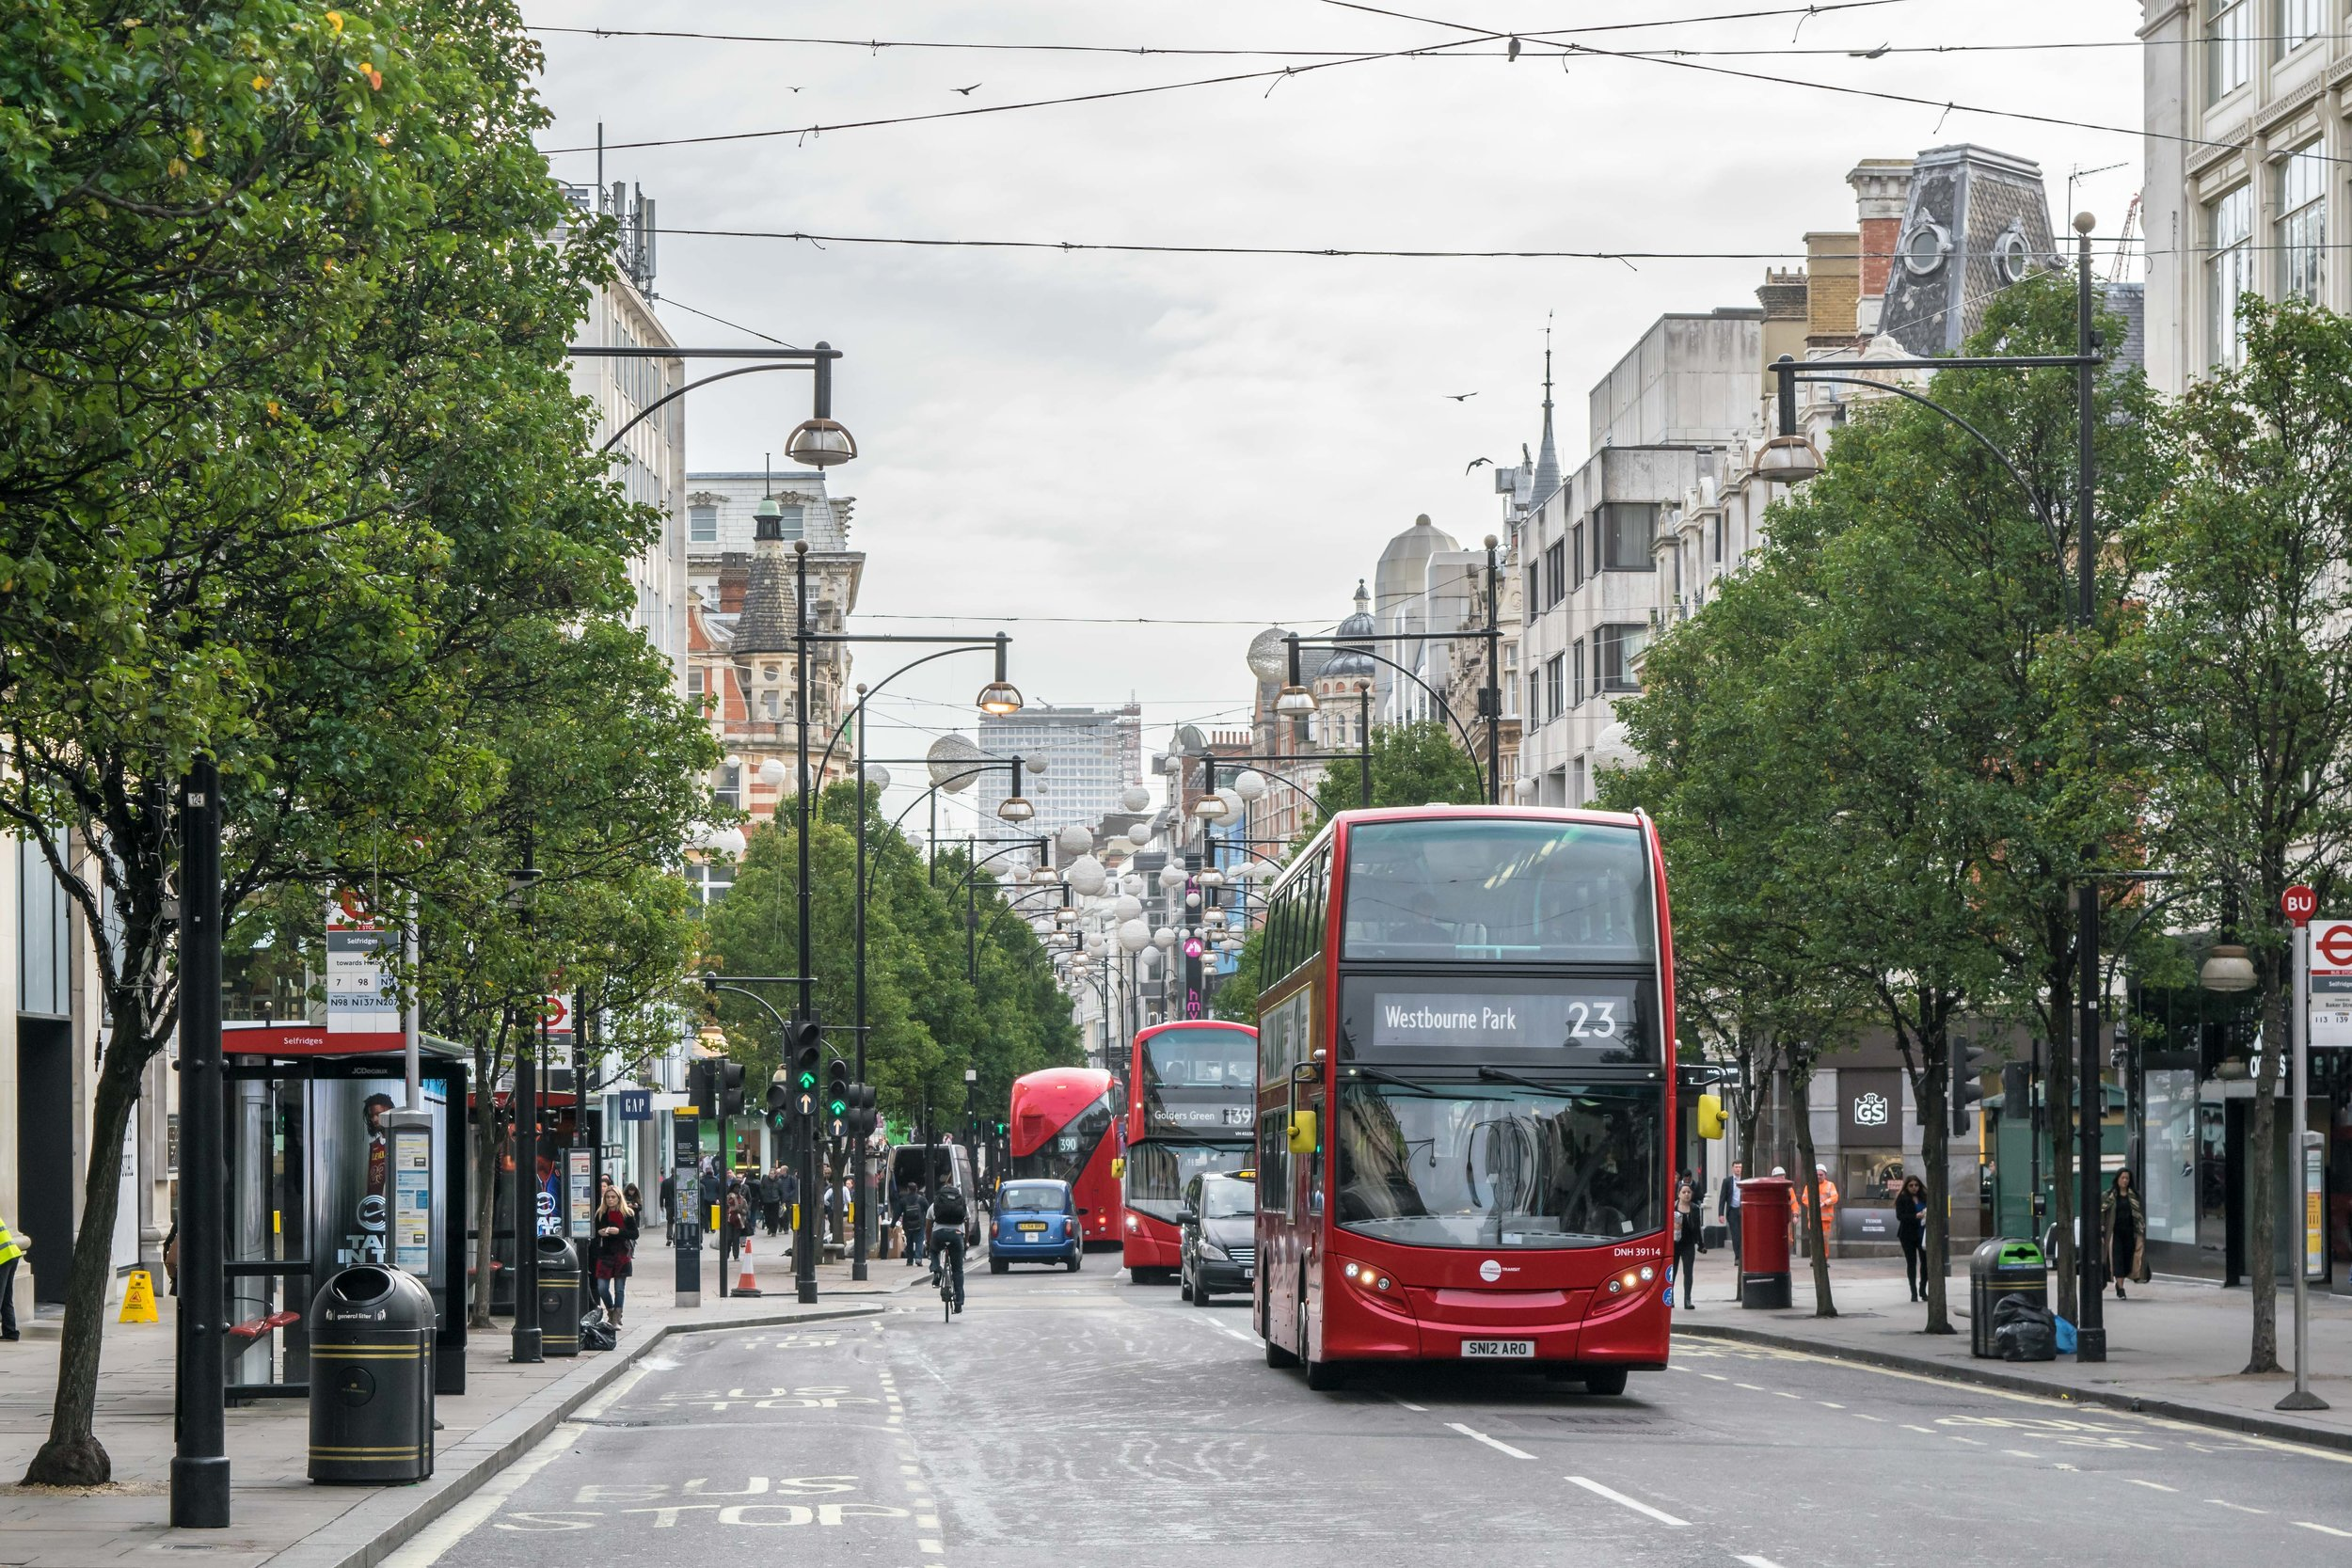 Red double decker buses on Oxford Street